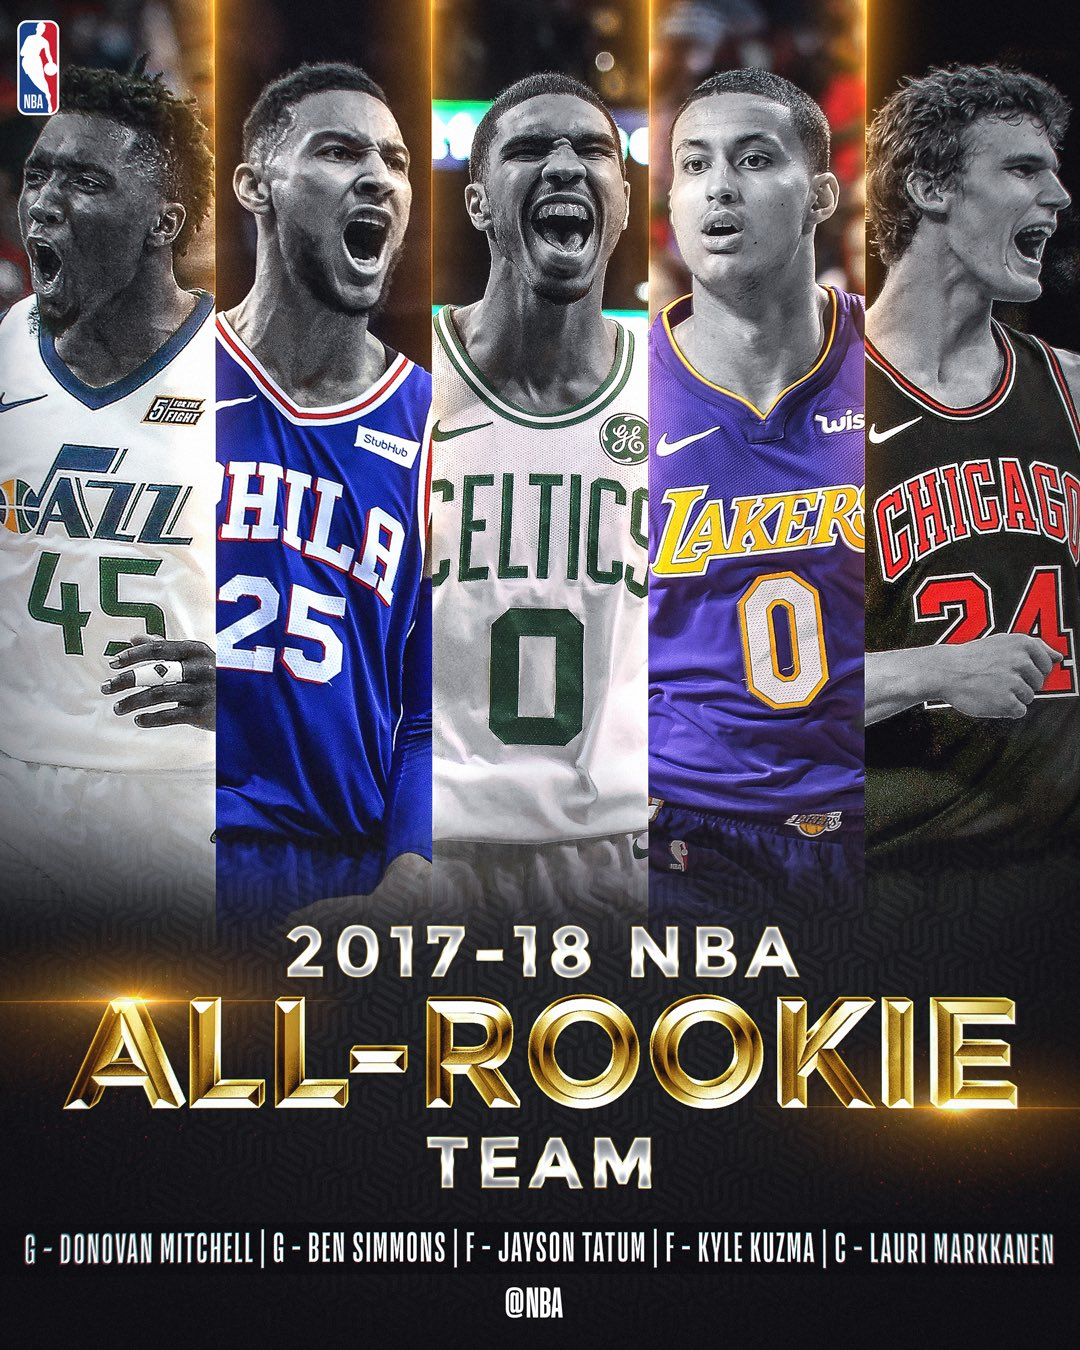 The 2017-18 NBA All-Rookie First Team!   @spidadmitchell  @BenSimmons25  @jaytatum0  @kylekuzma  @MarkkanenLauri https://t.co/9Sk3KGHlOI